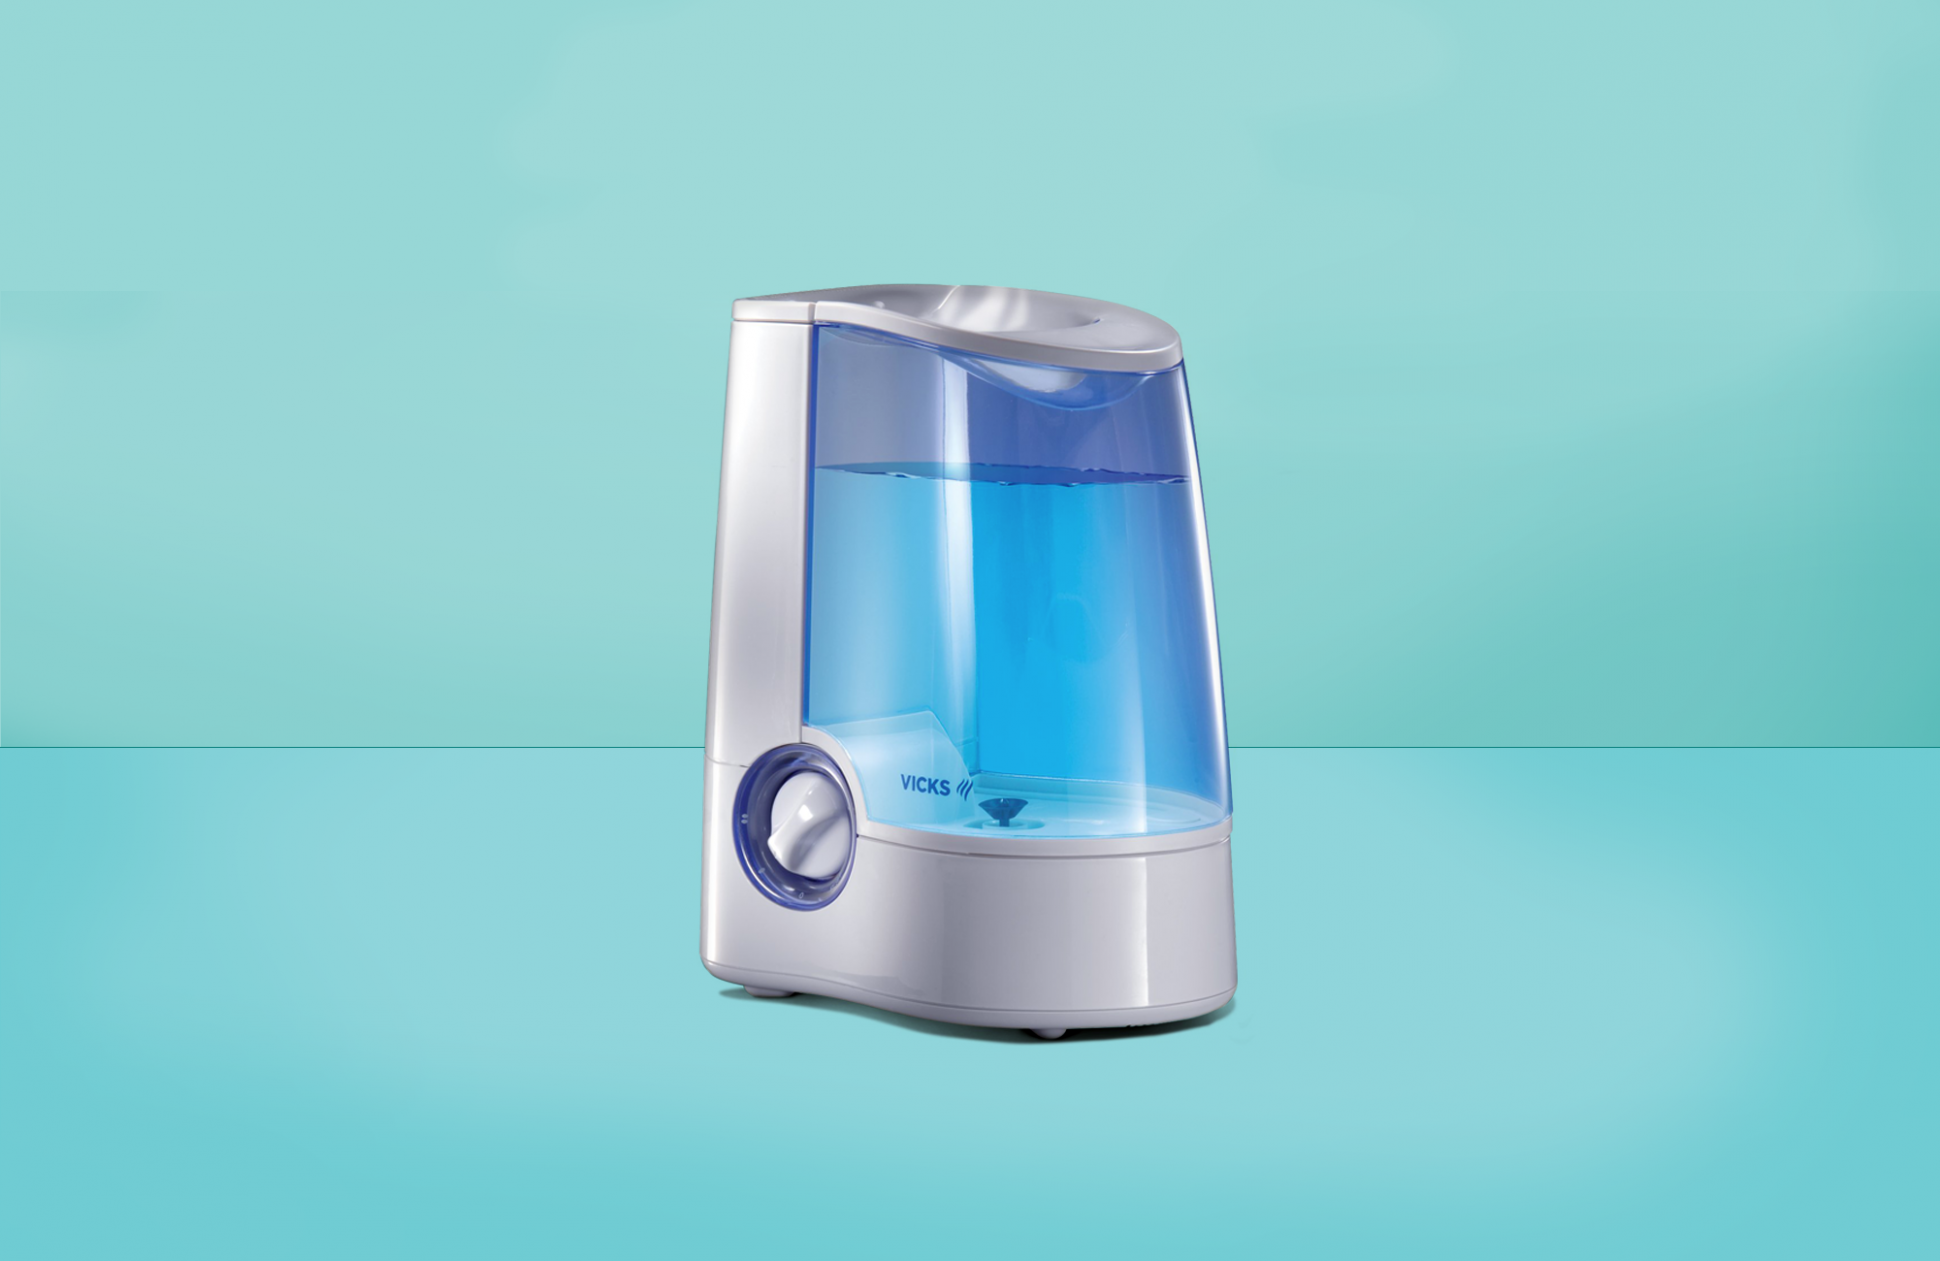 10 Best Baby Humidifiers 10 - Top Humidifier Benefits for Babies - baby room vaporizer